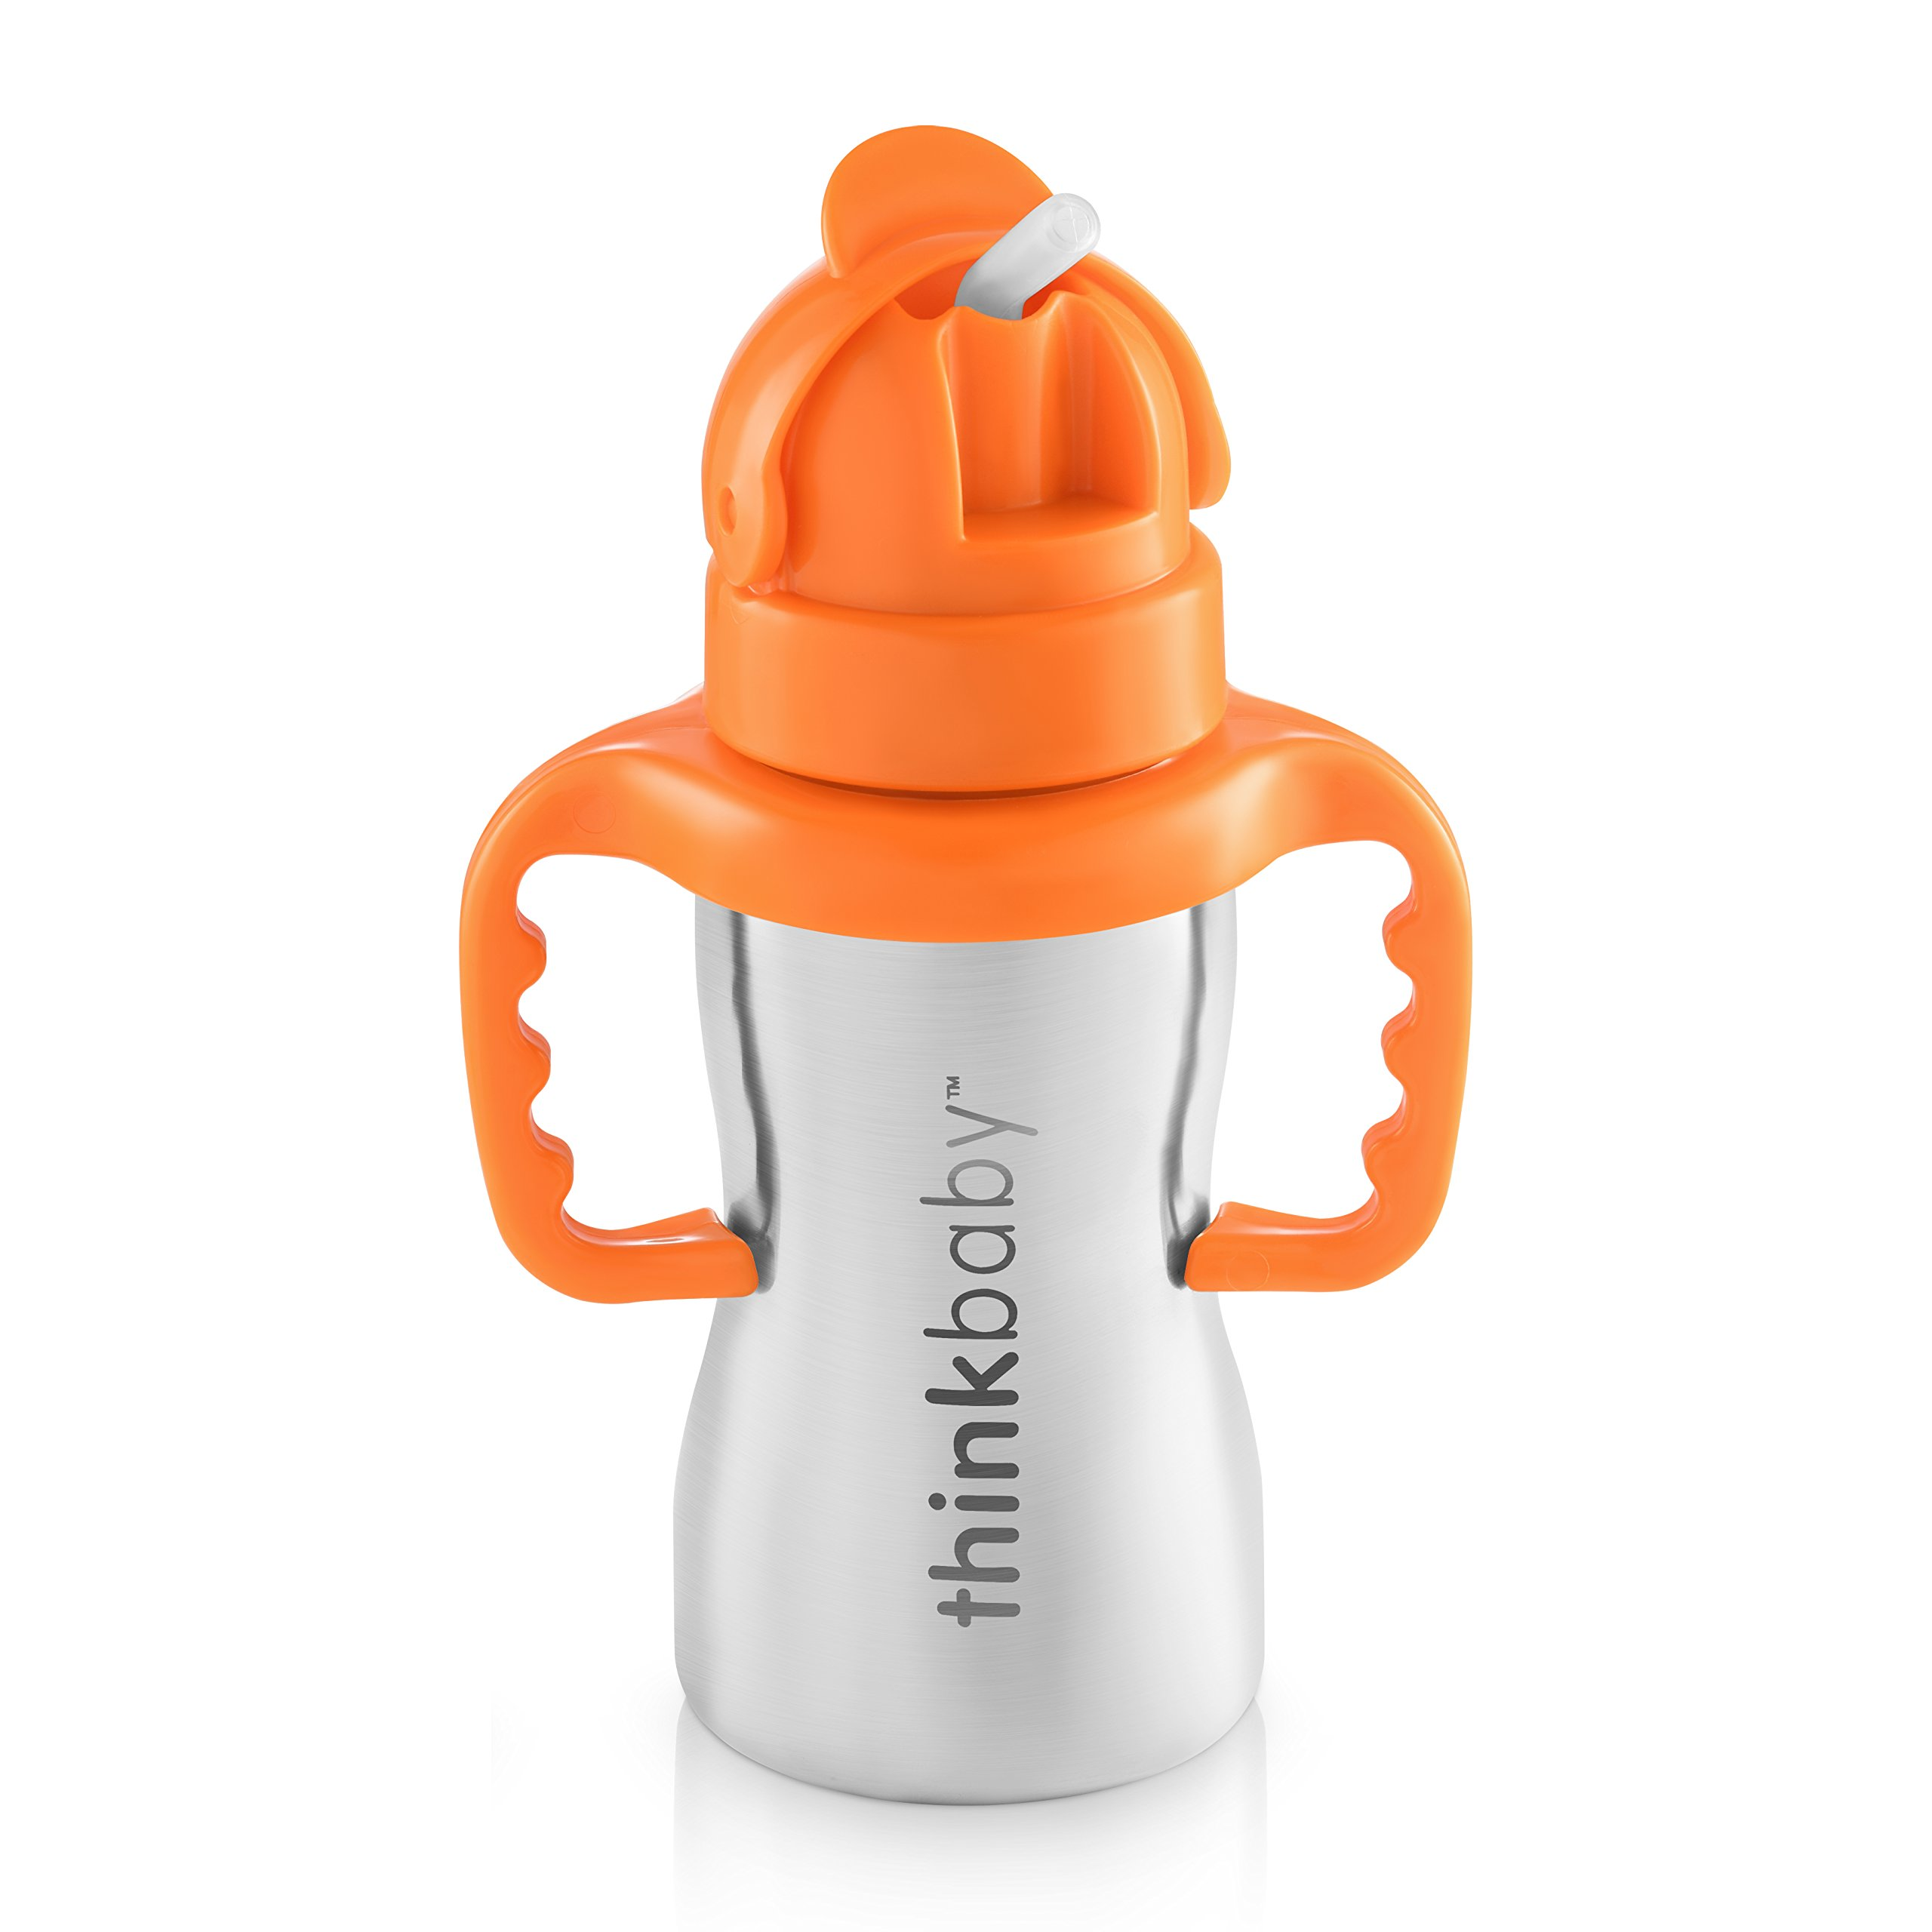 Thinkbaby Stainless Steel Thinkster Bottle, Orange (9 ounce) by Thinkbaby